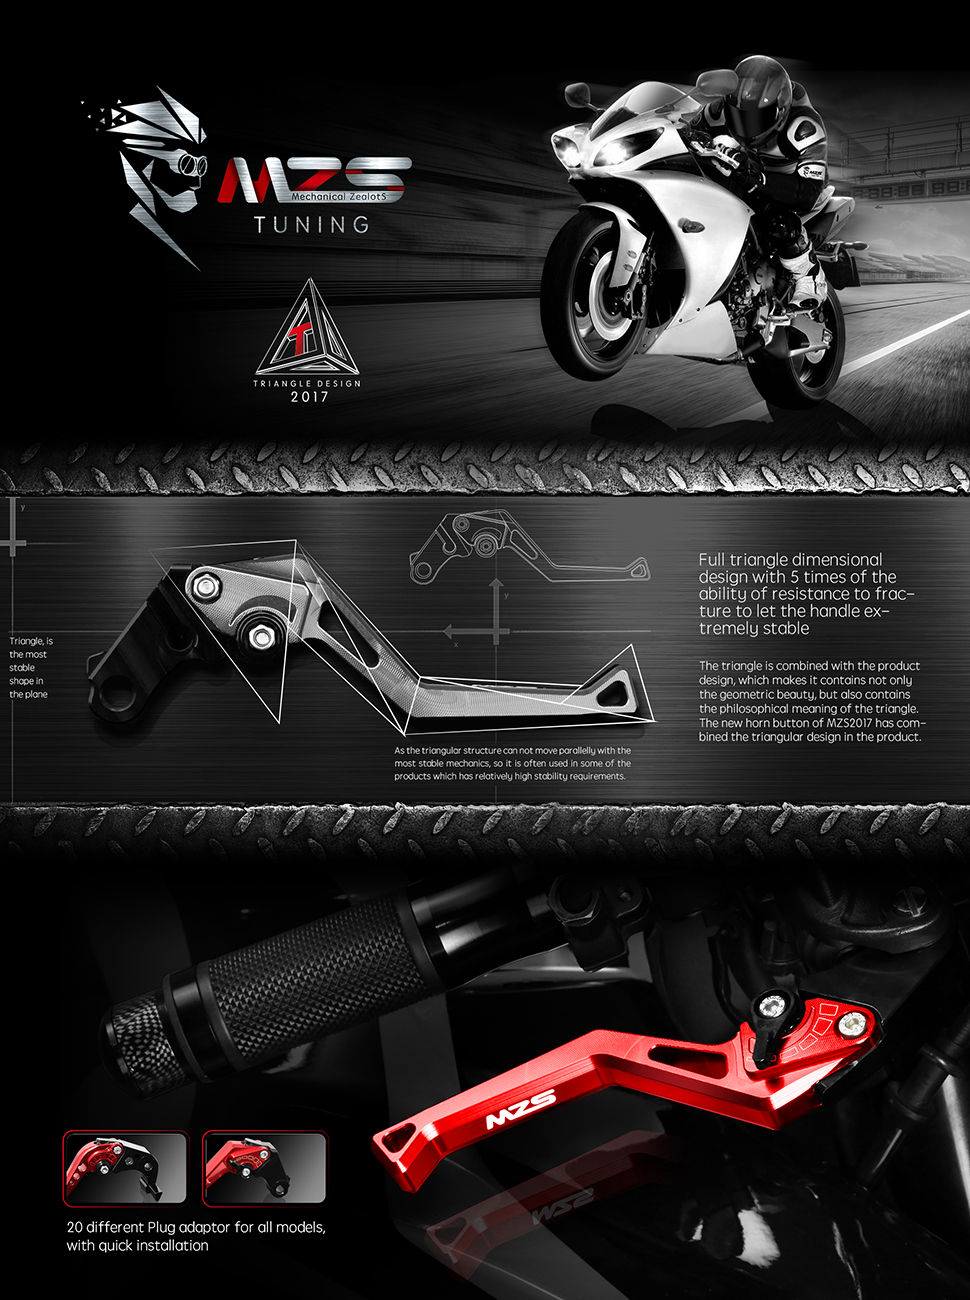 MZS Short Levers Adjustment Brake Clutch for Kawasaki NINJA 650R ER-6f ER-6n 06-08/ VERSYS 650 06-08/ GPZ500S EX500R 90-09/ W800 W800SE 12-16/ Z750S ...